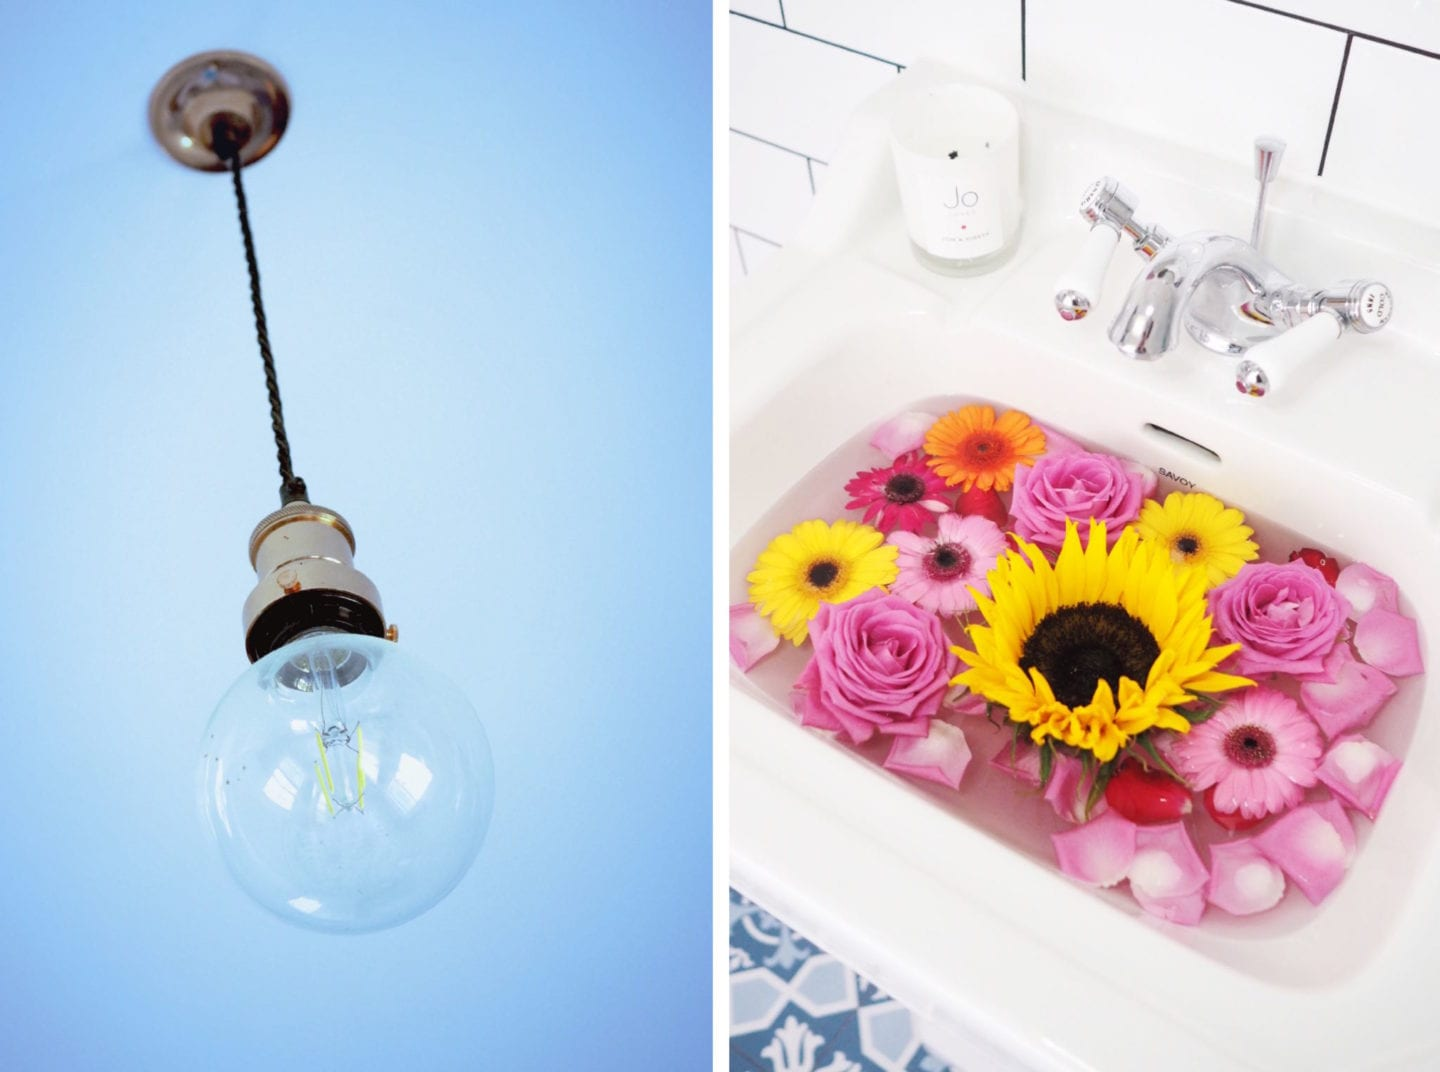 flowers in a sink and blue ceiling